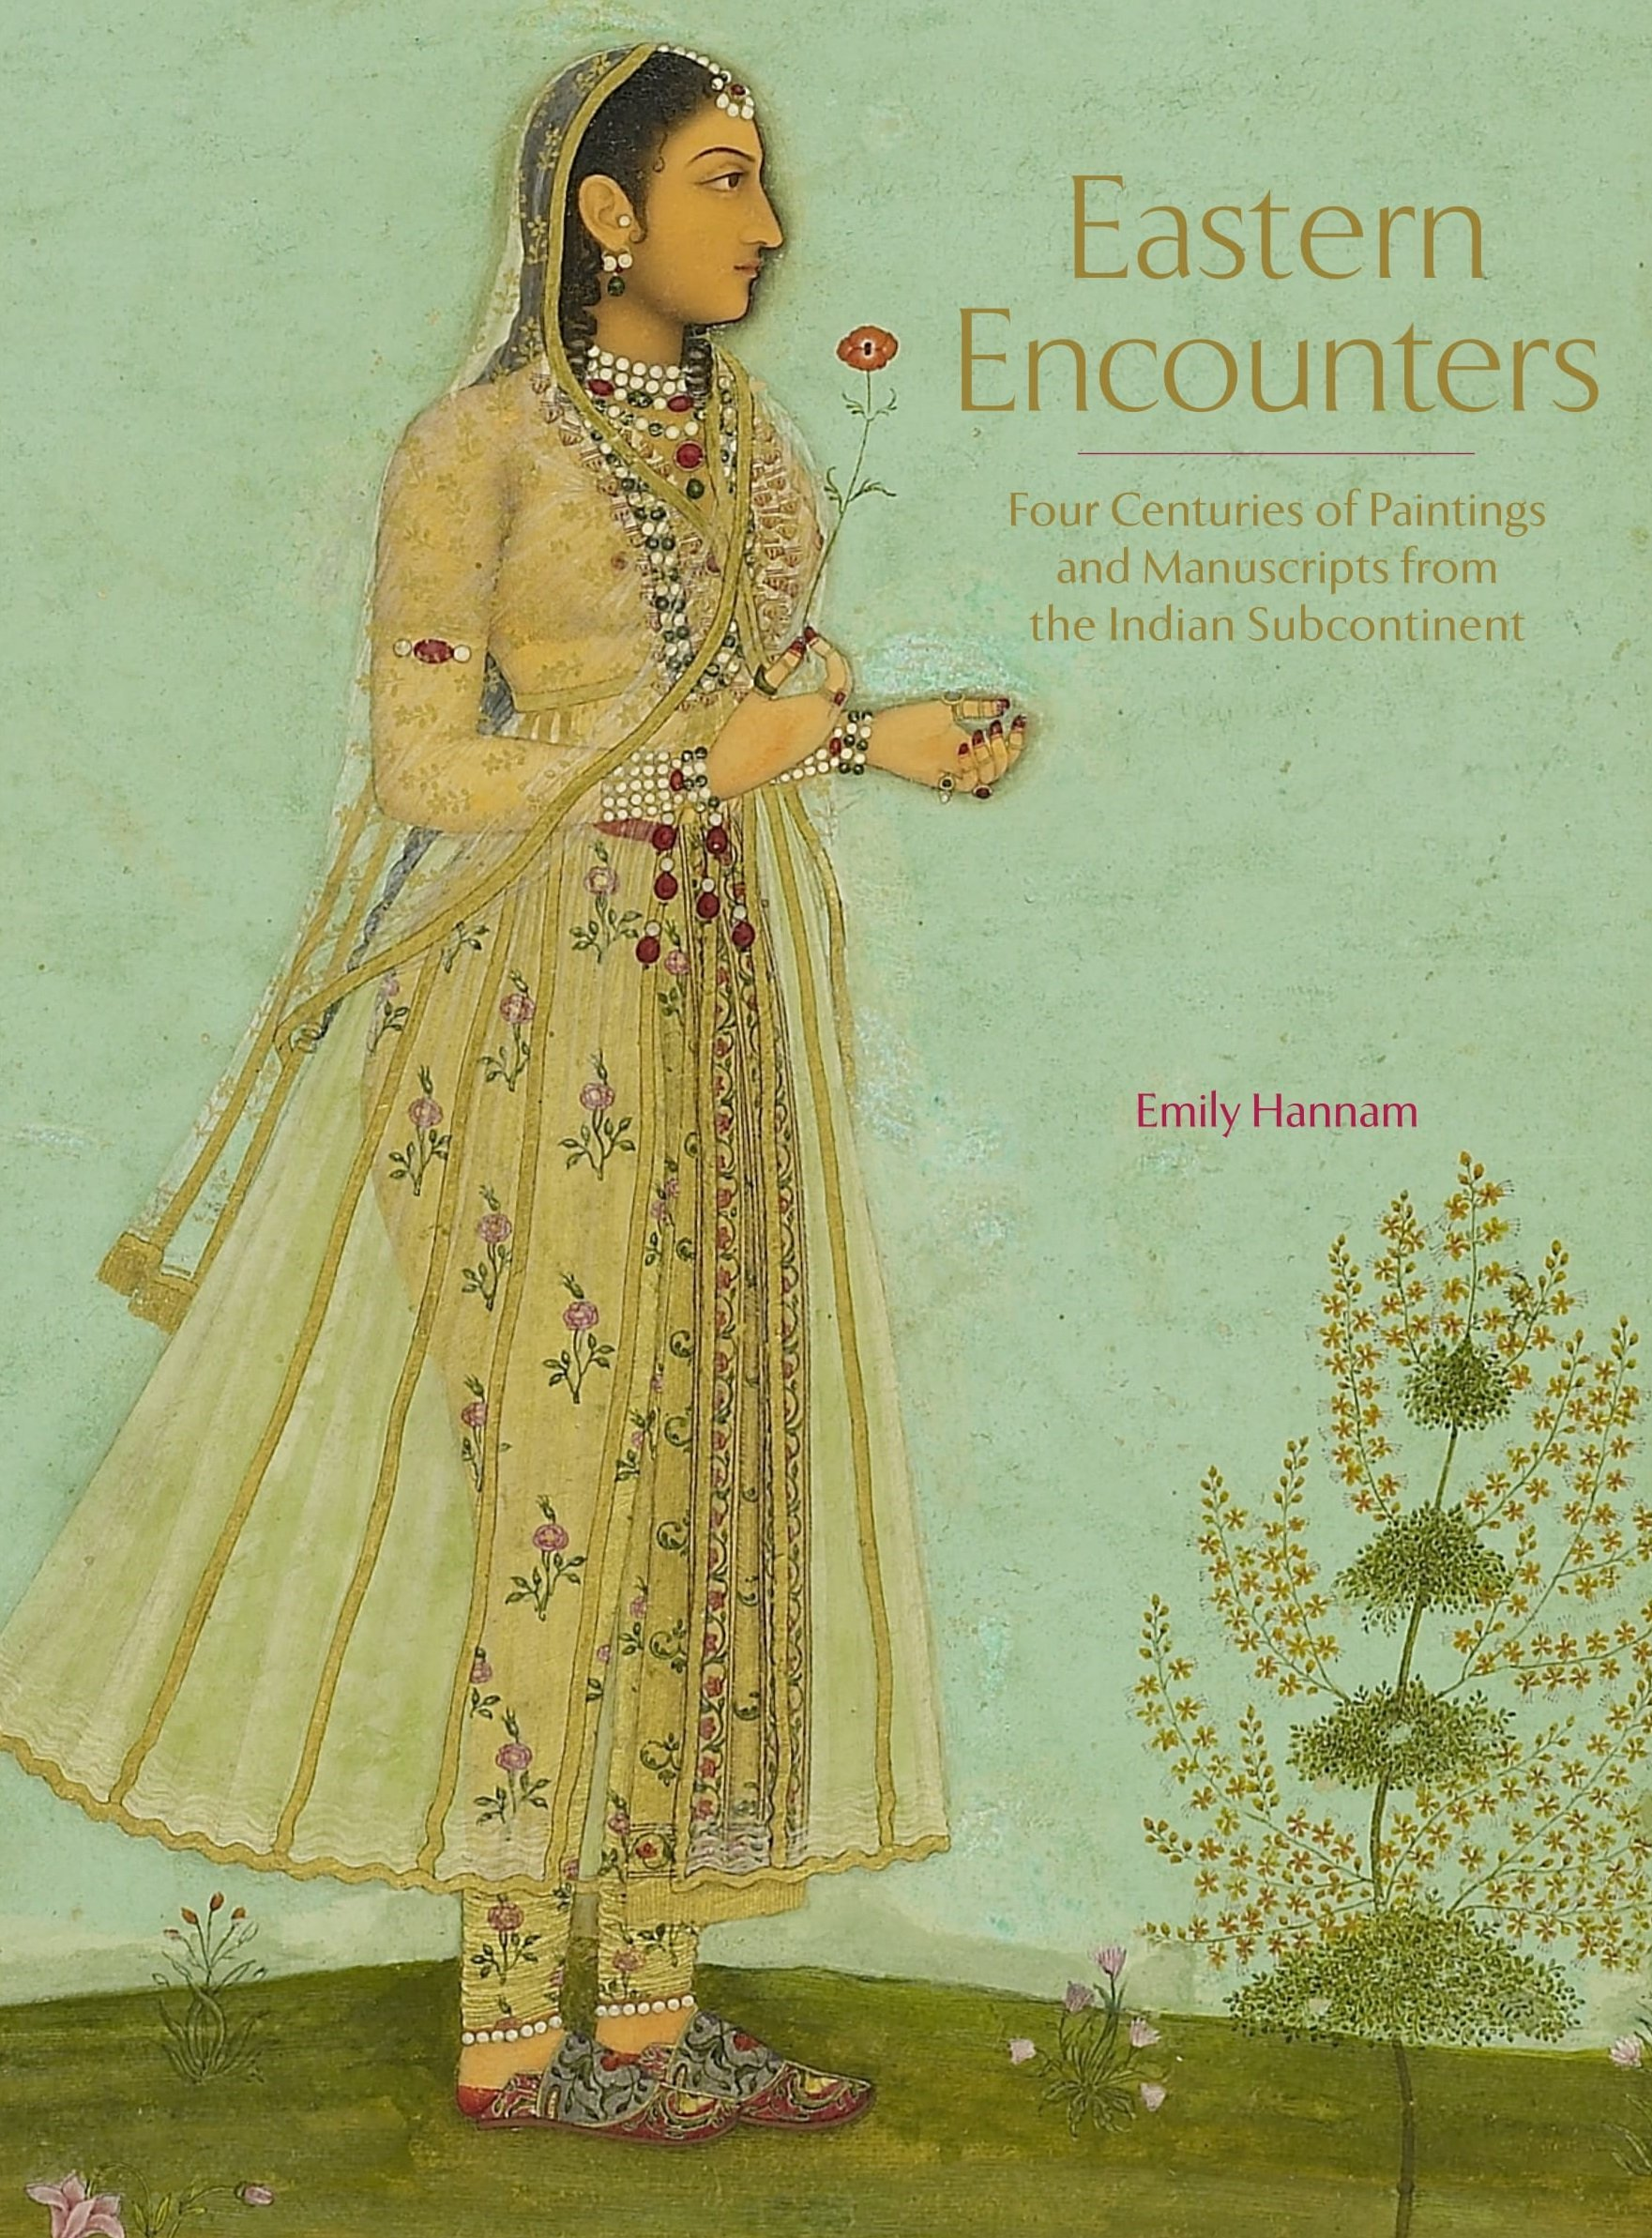 Eastern Encounters: Four Centuries of Paintings and Manuscripts from the Indian Subcontinent ePub fb2 book